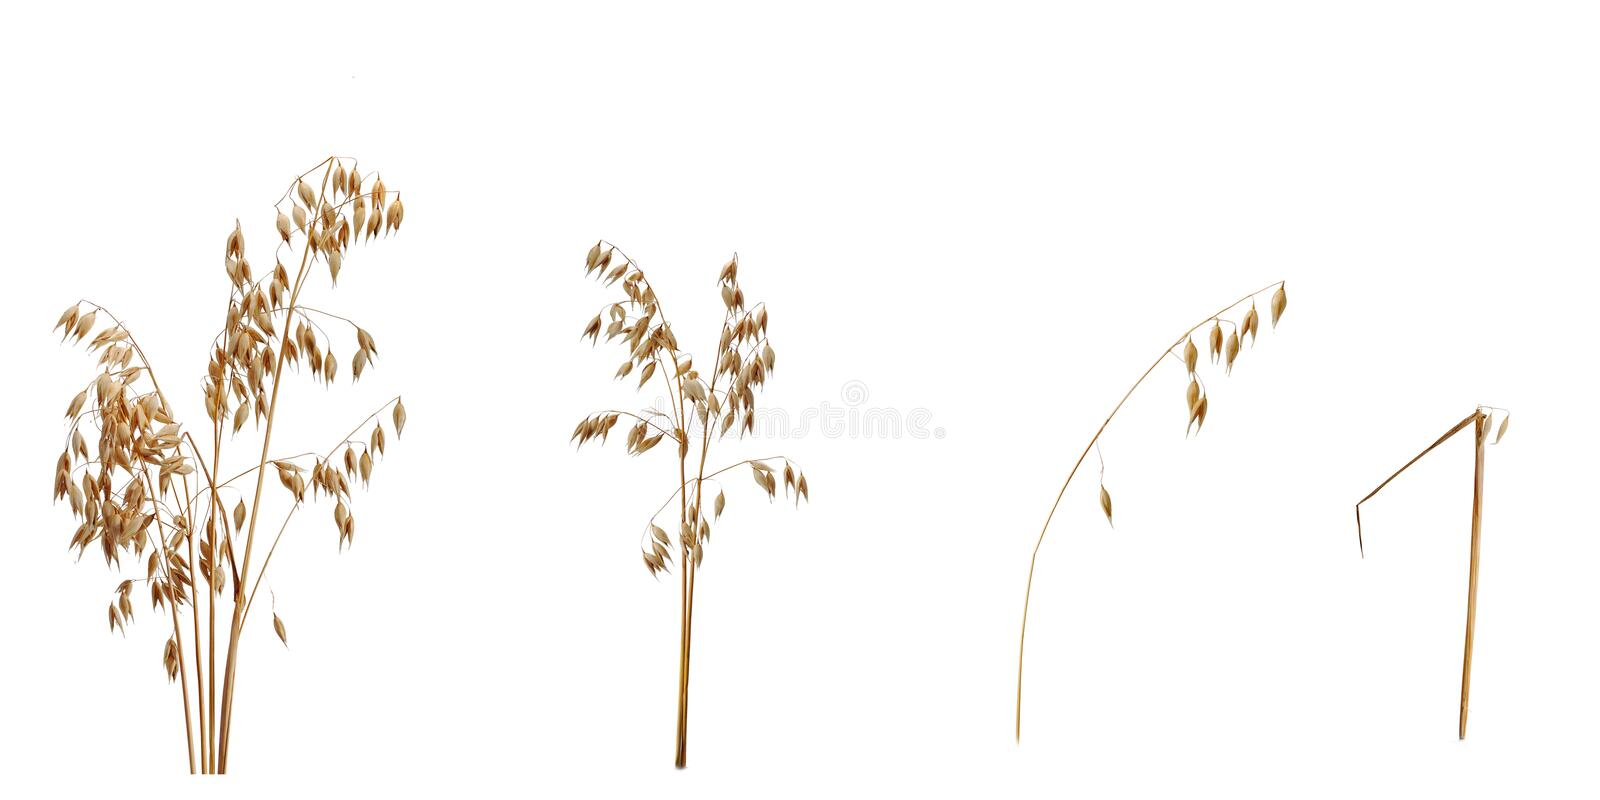 Law of diminishing returns. Shown with crops yielding less and less royalty free stock images